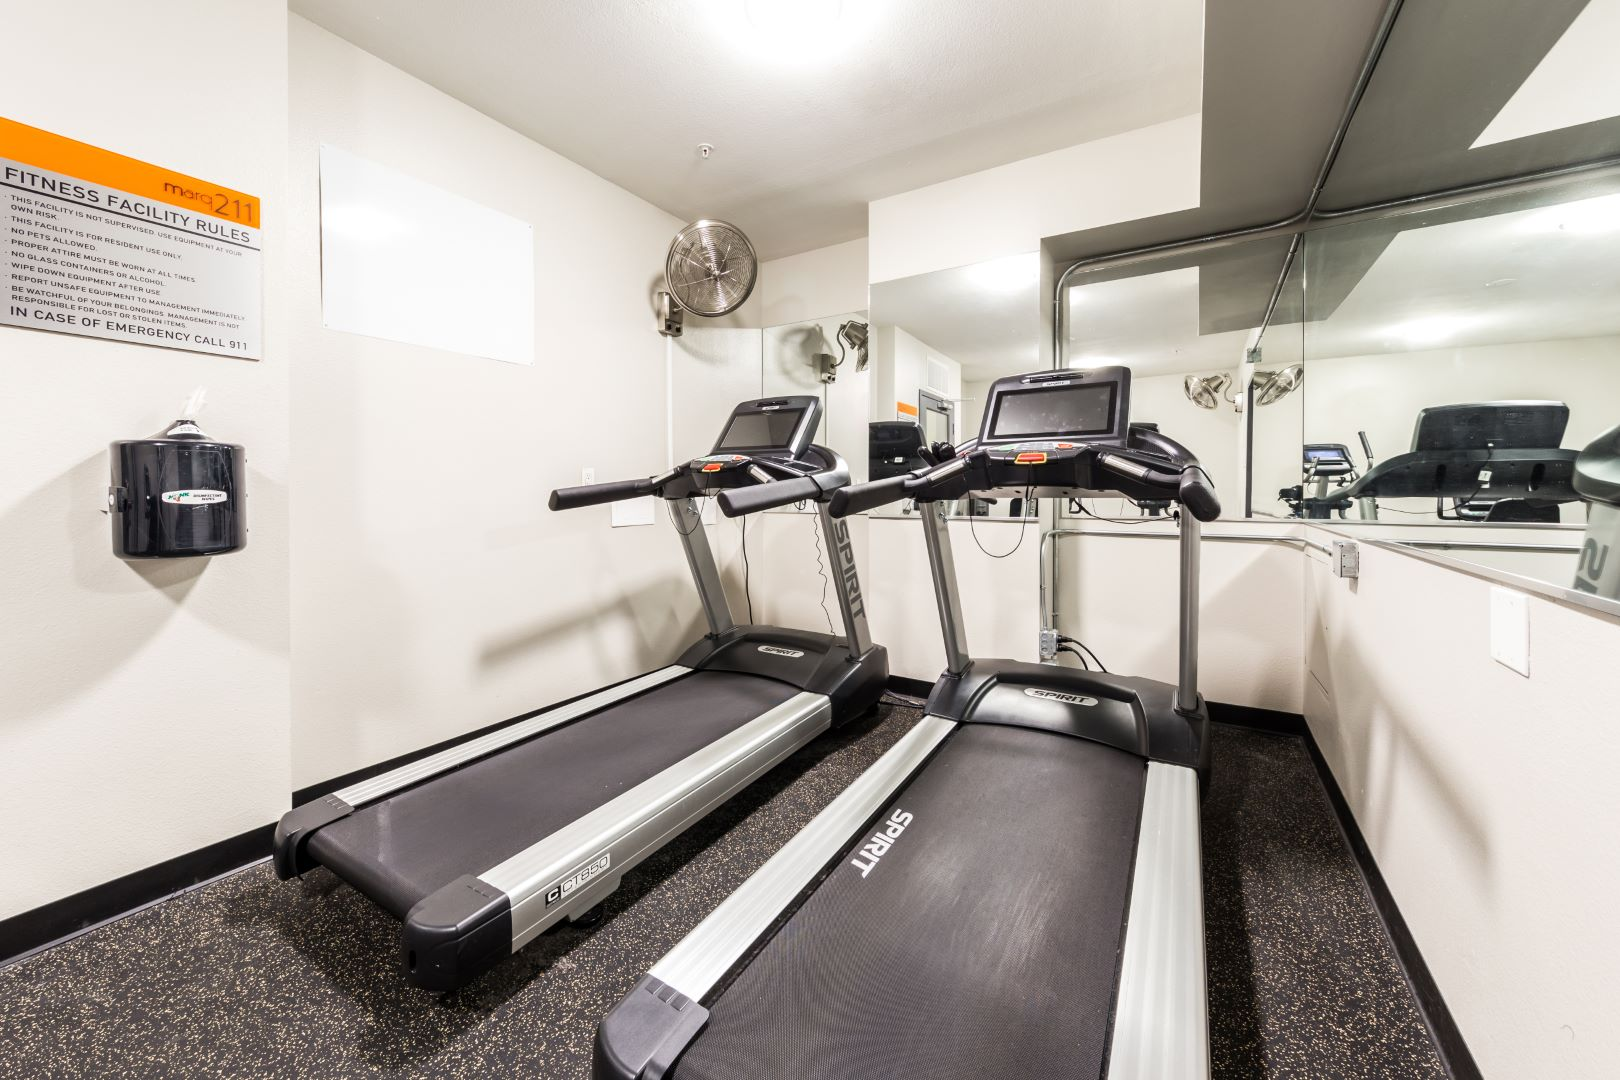 Fitness center at Marq 211 Apartments, Belltown, Seattle